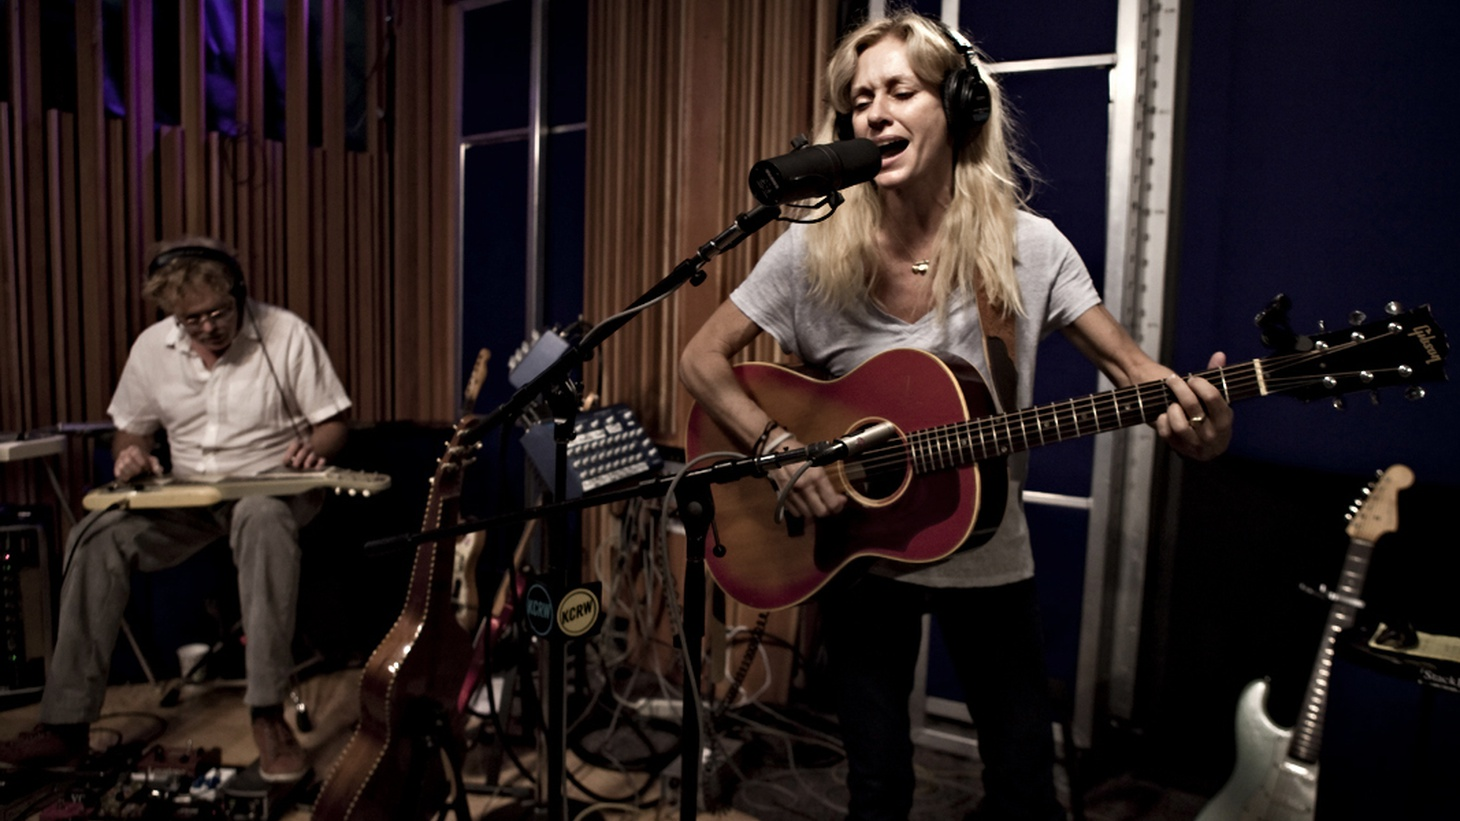 This edition of the Morning Becomes Eclectic Podcast features two distinct styles of music, from the classic sound of Southern Americana to the East Coast's take on summer vibes. We'll share live in studio highlights from Shelby Lynne and Vacationer.